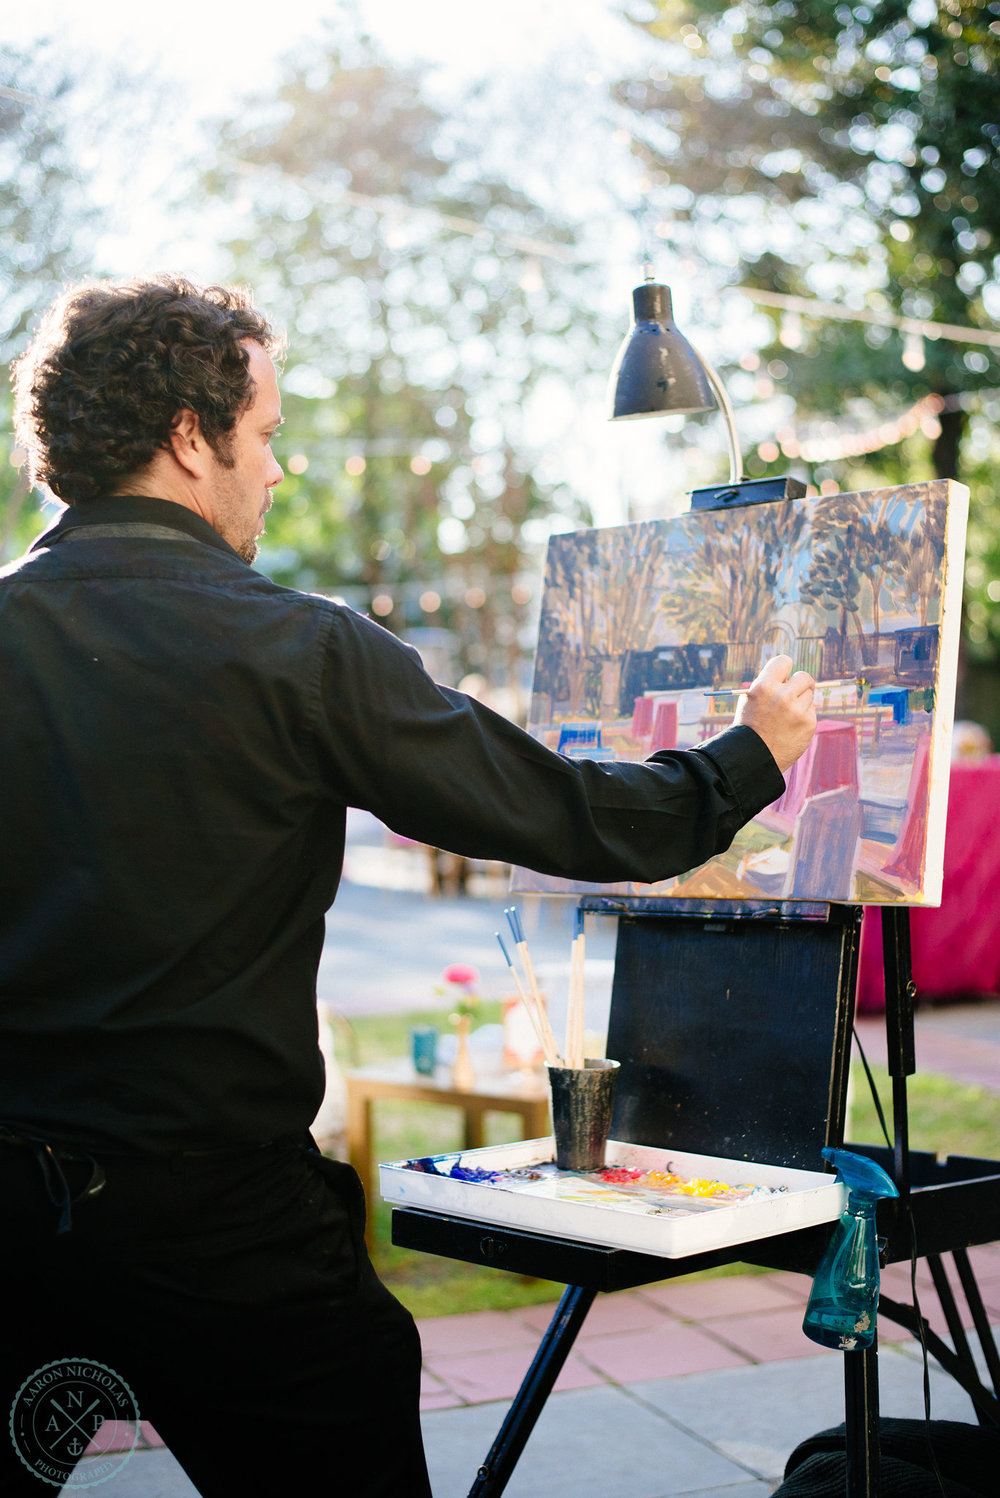 live-artist-the-knot-painting-live-wed-on-canvas-ben-keys-gibbes-museum-charleston-plein-air-painting